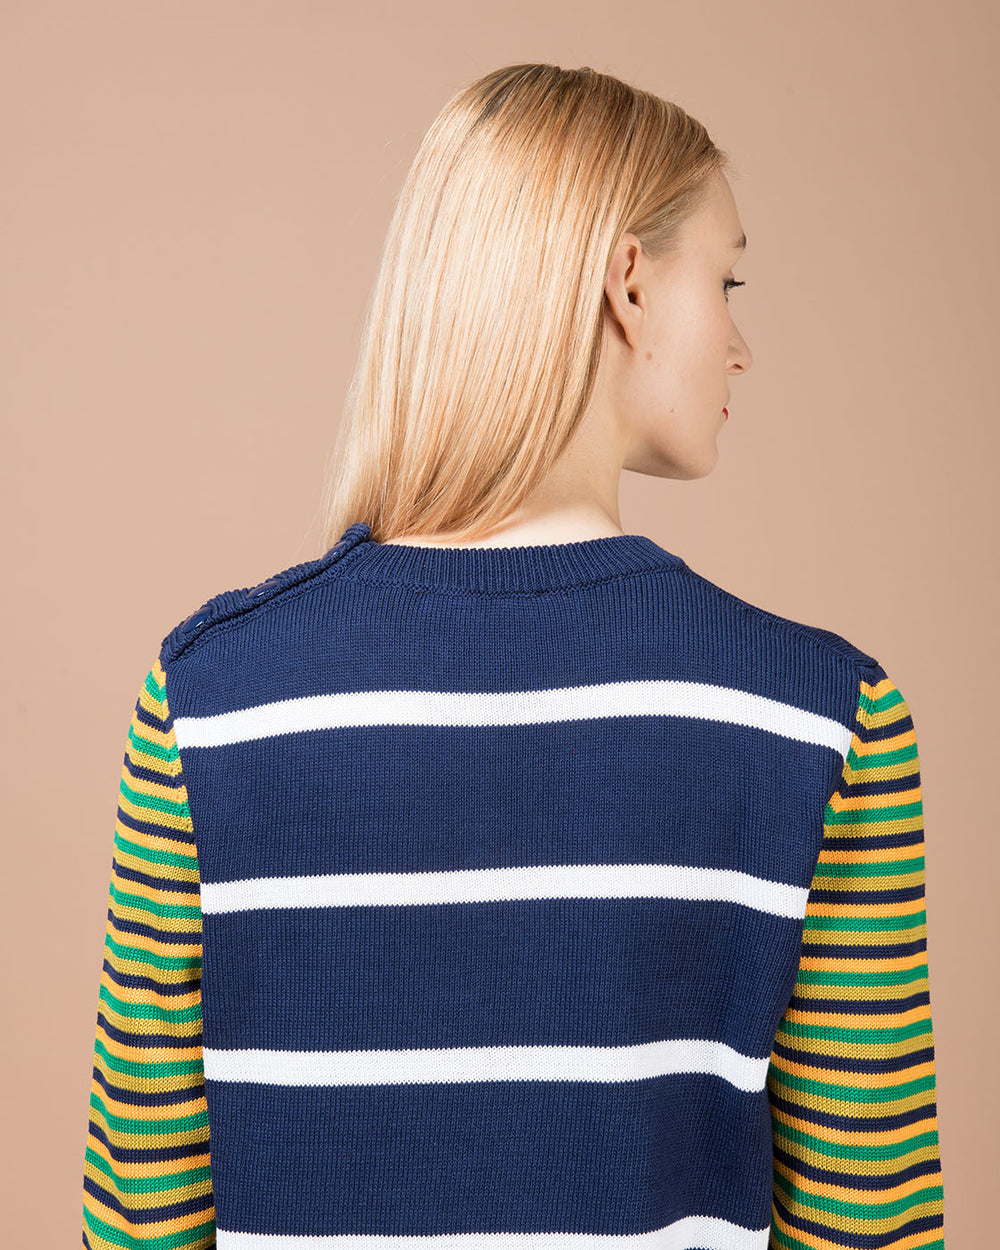 Blue Crewneck Sweater with Multicolor Sleeves